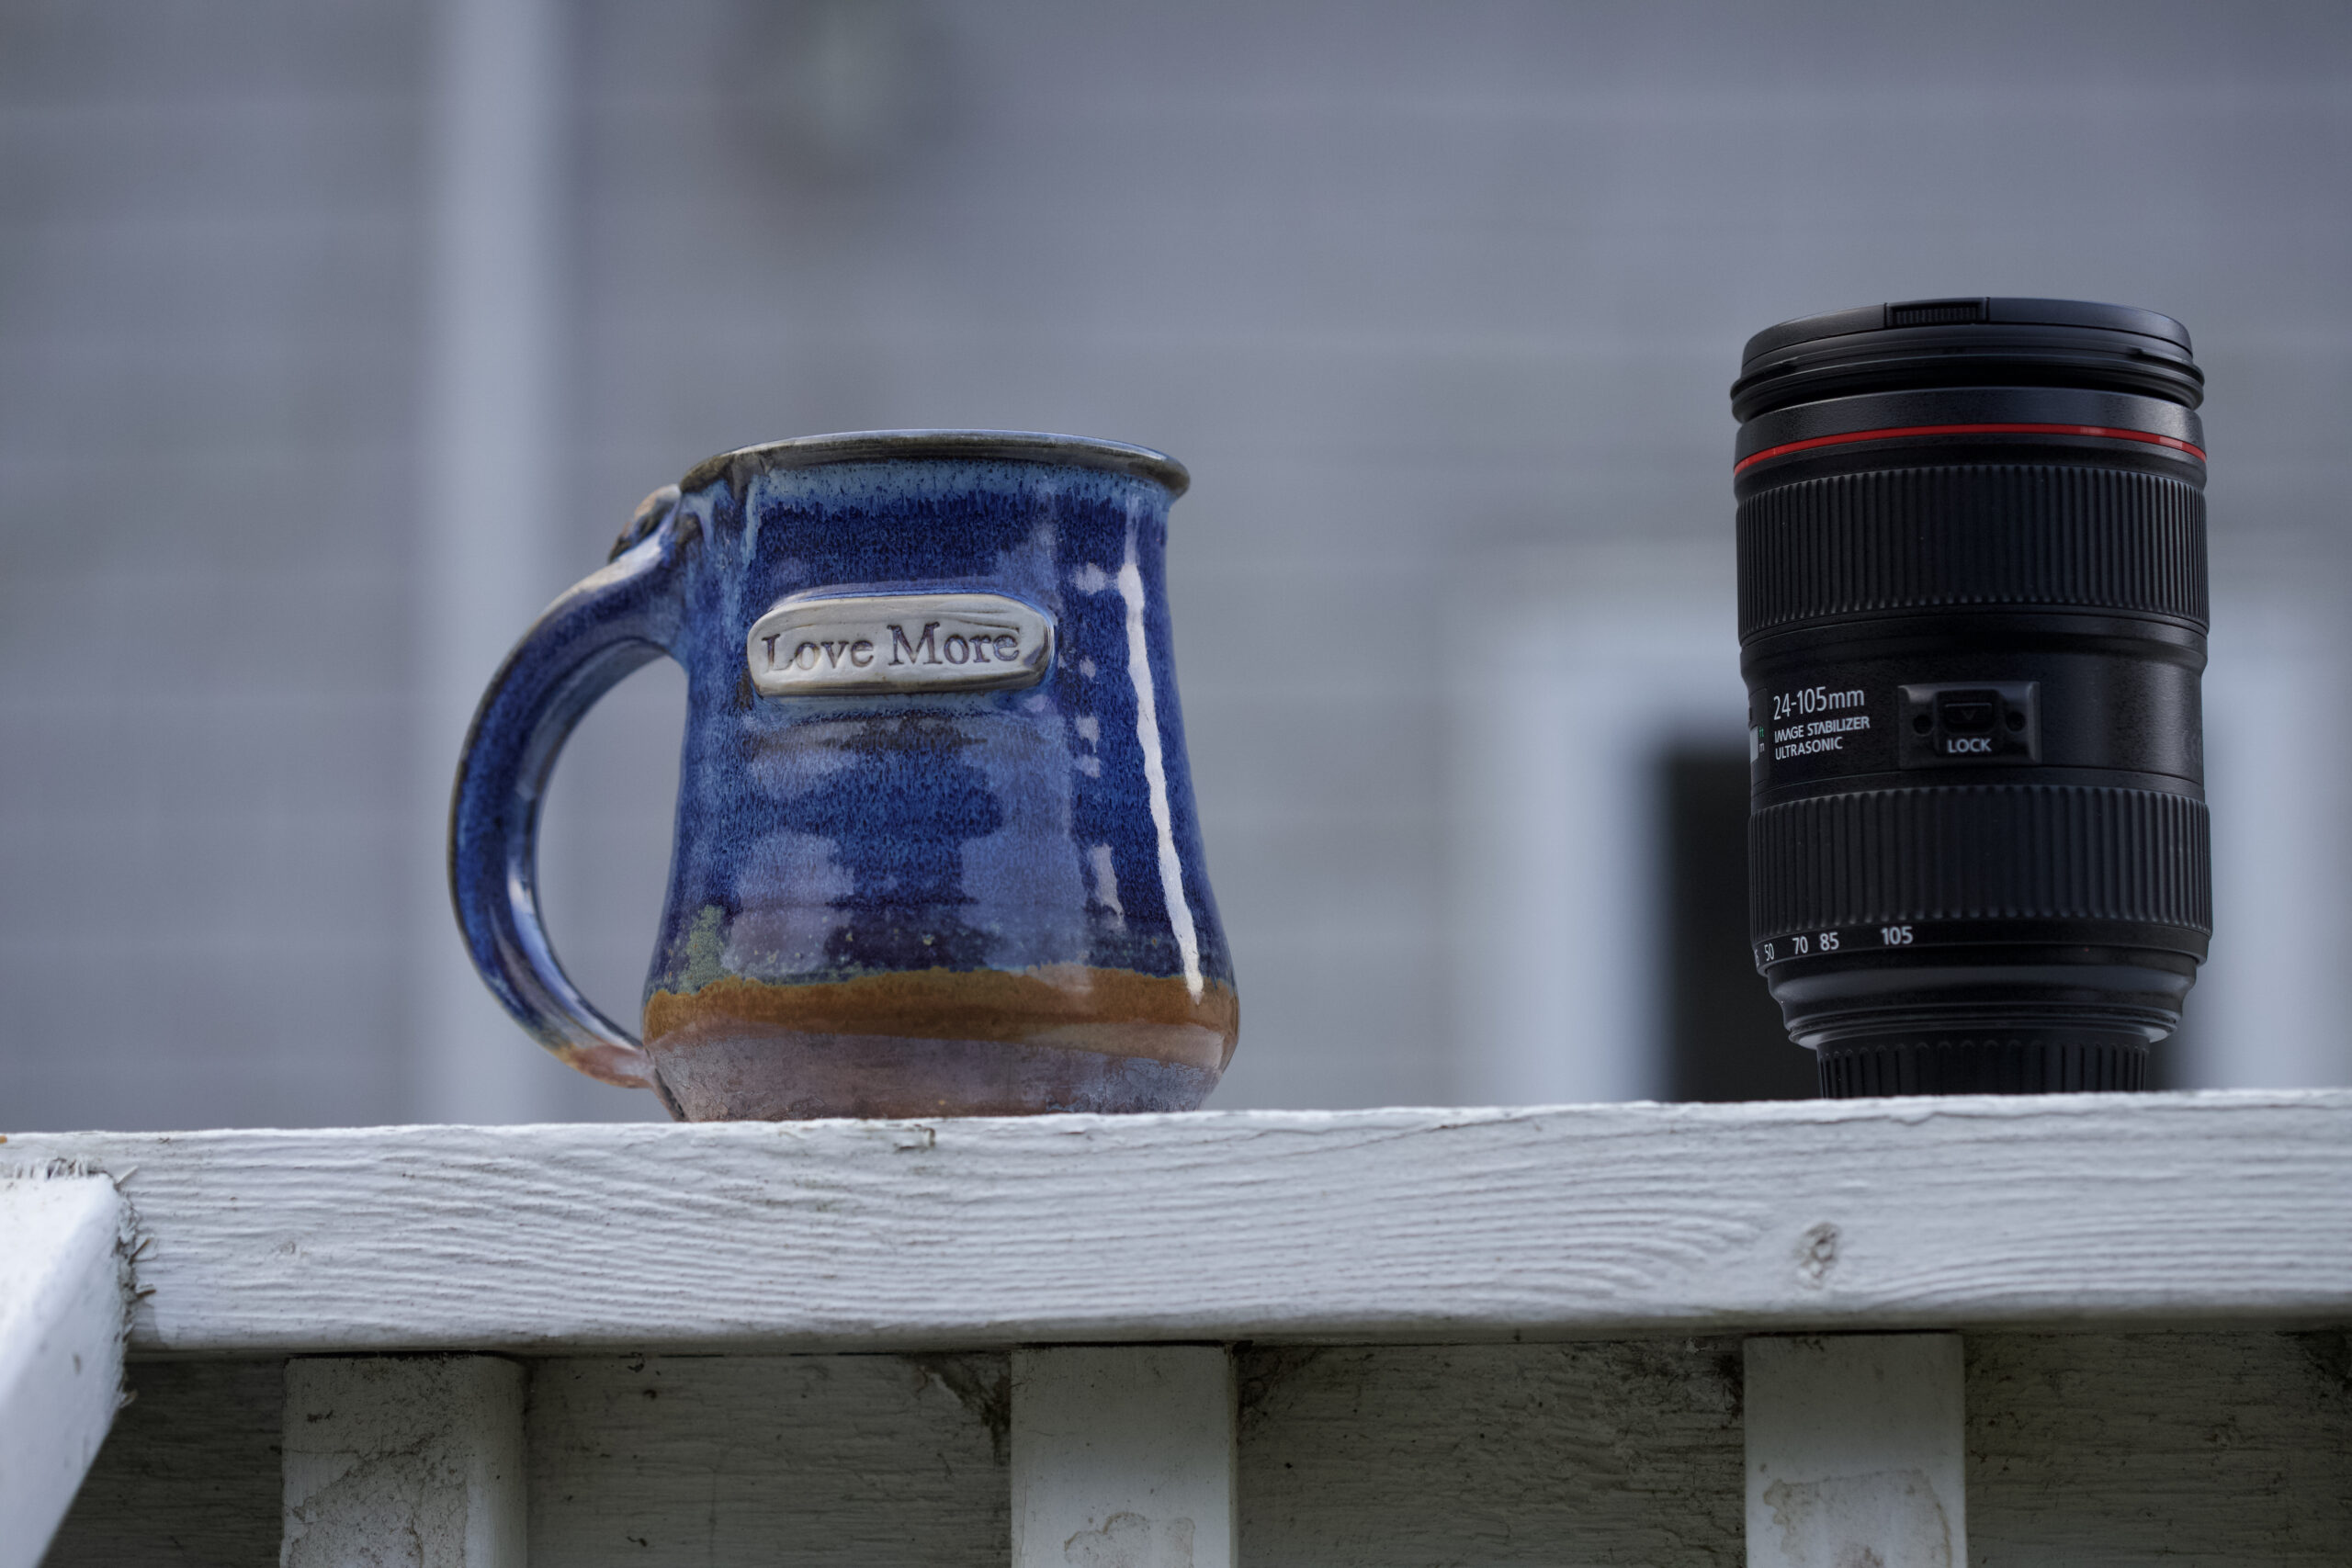 """Blue handcrafted mug with words """"love more"""" engraved on it sitting next to a DLSR camera lens"""